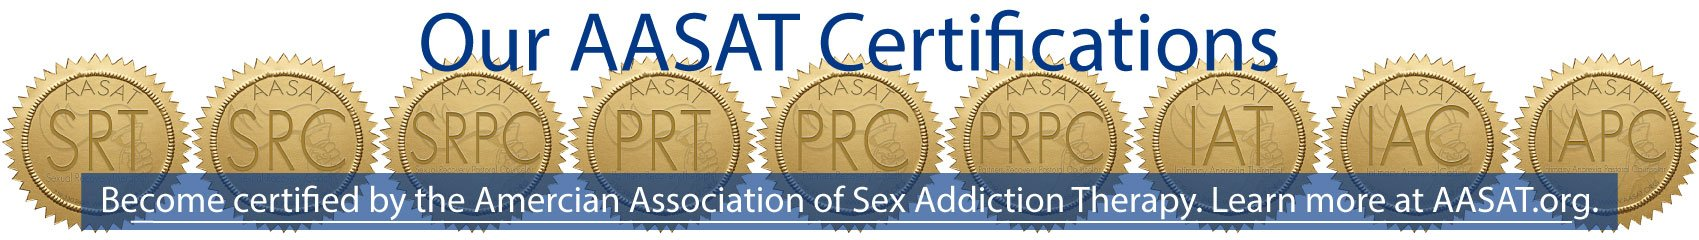 American Association for Sex Addiction Therapy Certification Programs